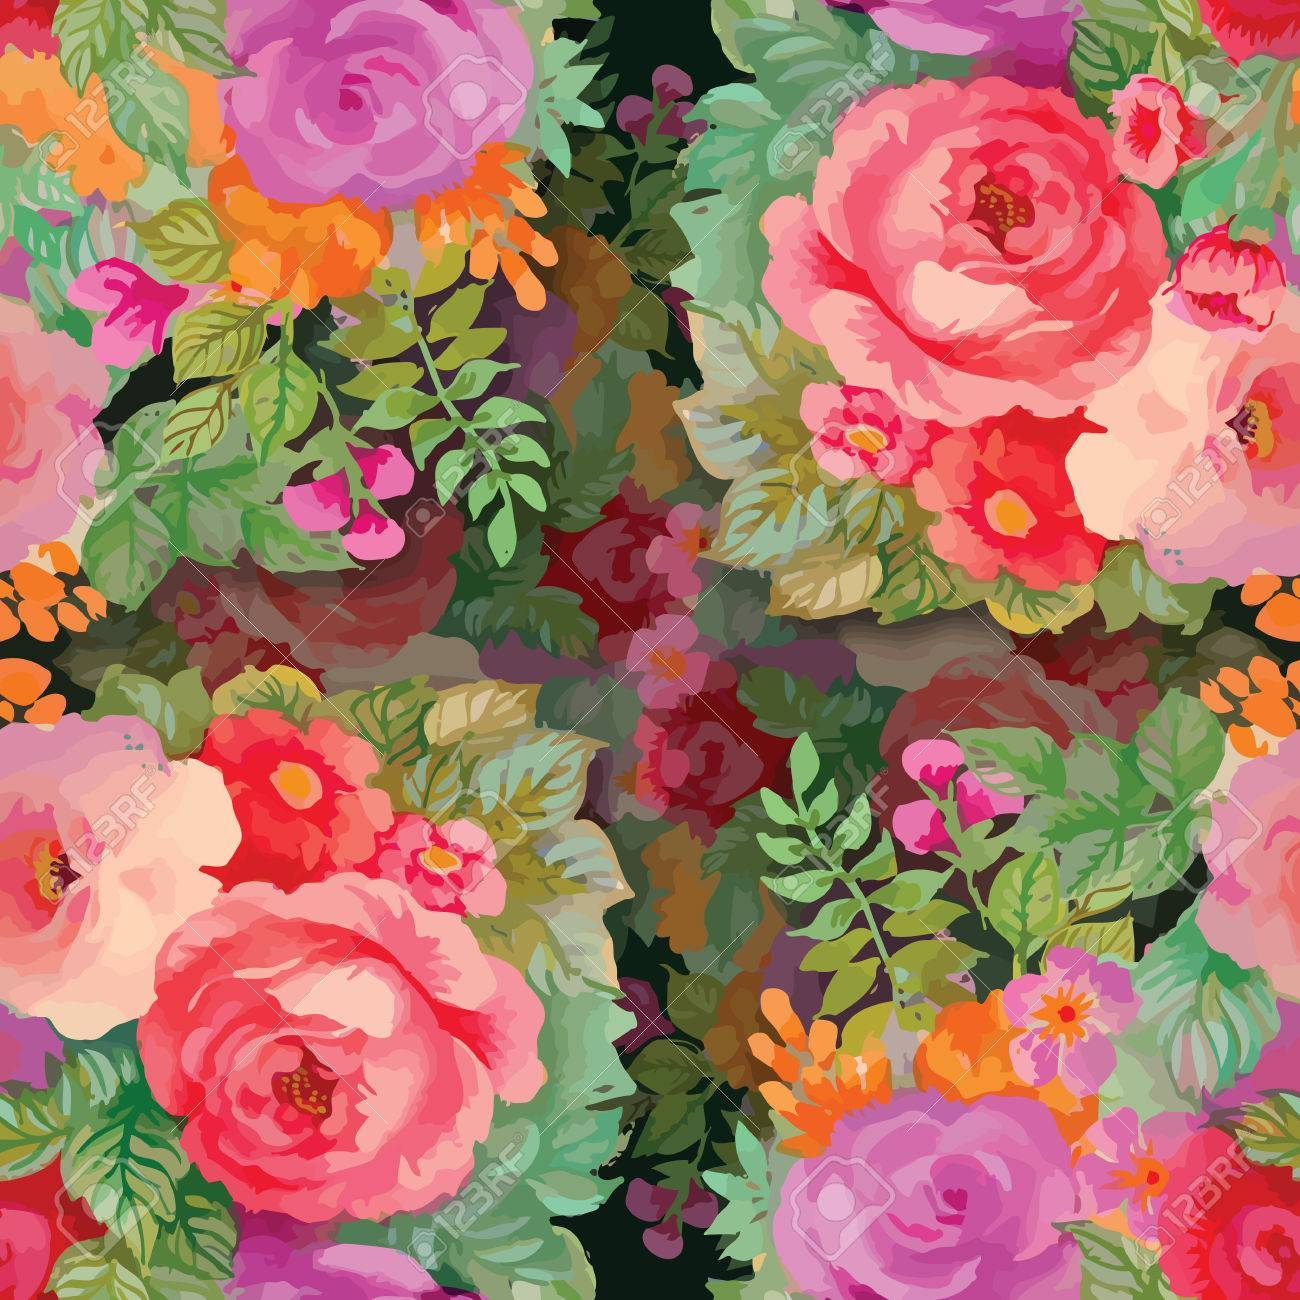 Seamless patterns with Beautiful flowers, watercolor illustration - 41115975